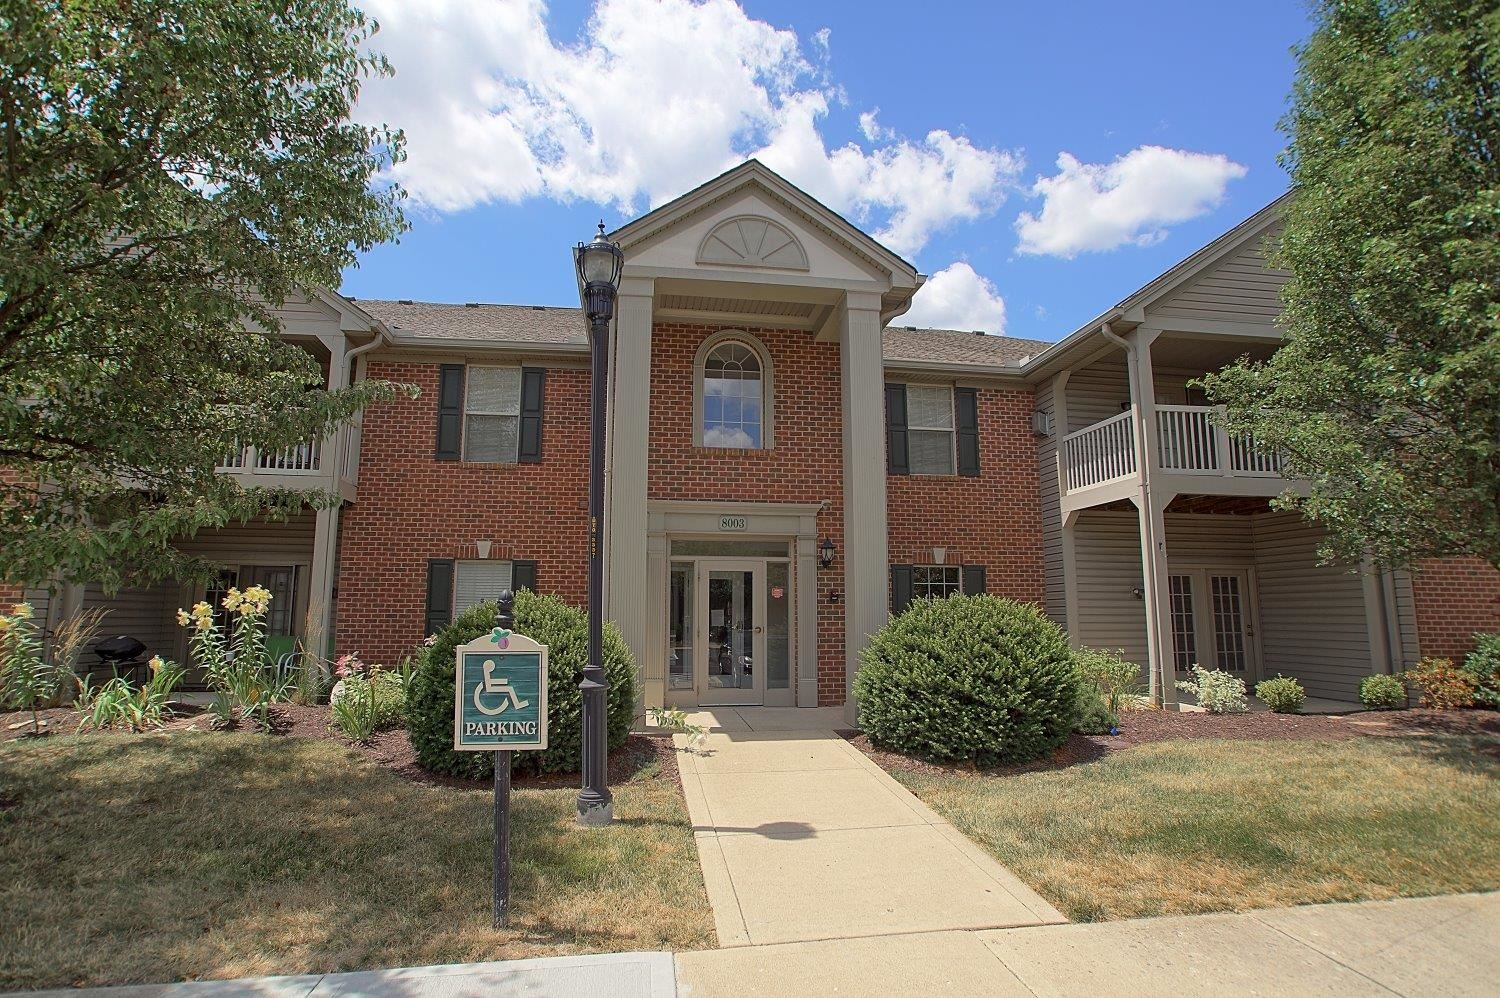 8003 Pinnacle Point Drive #101, West Chester, OH 45069 - #: 1668063